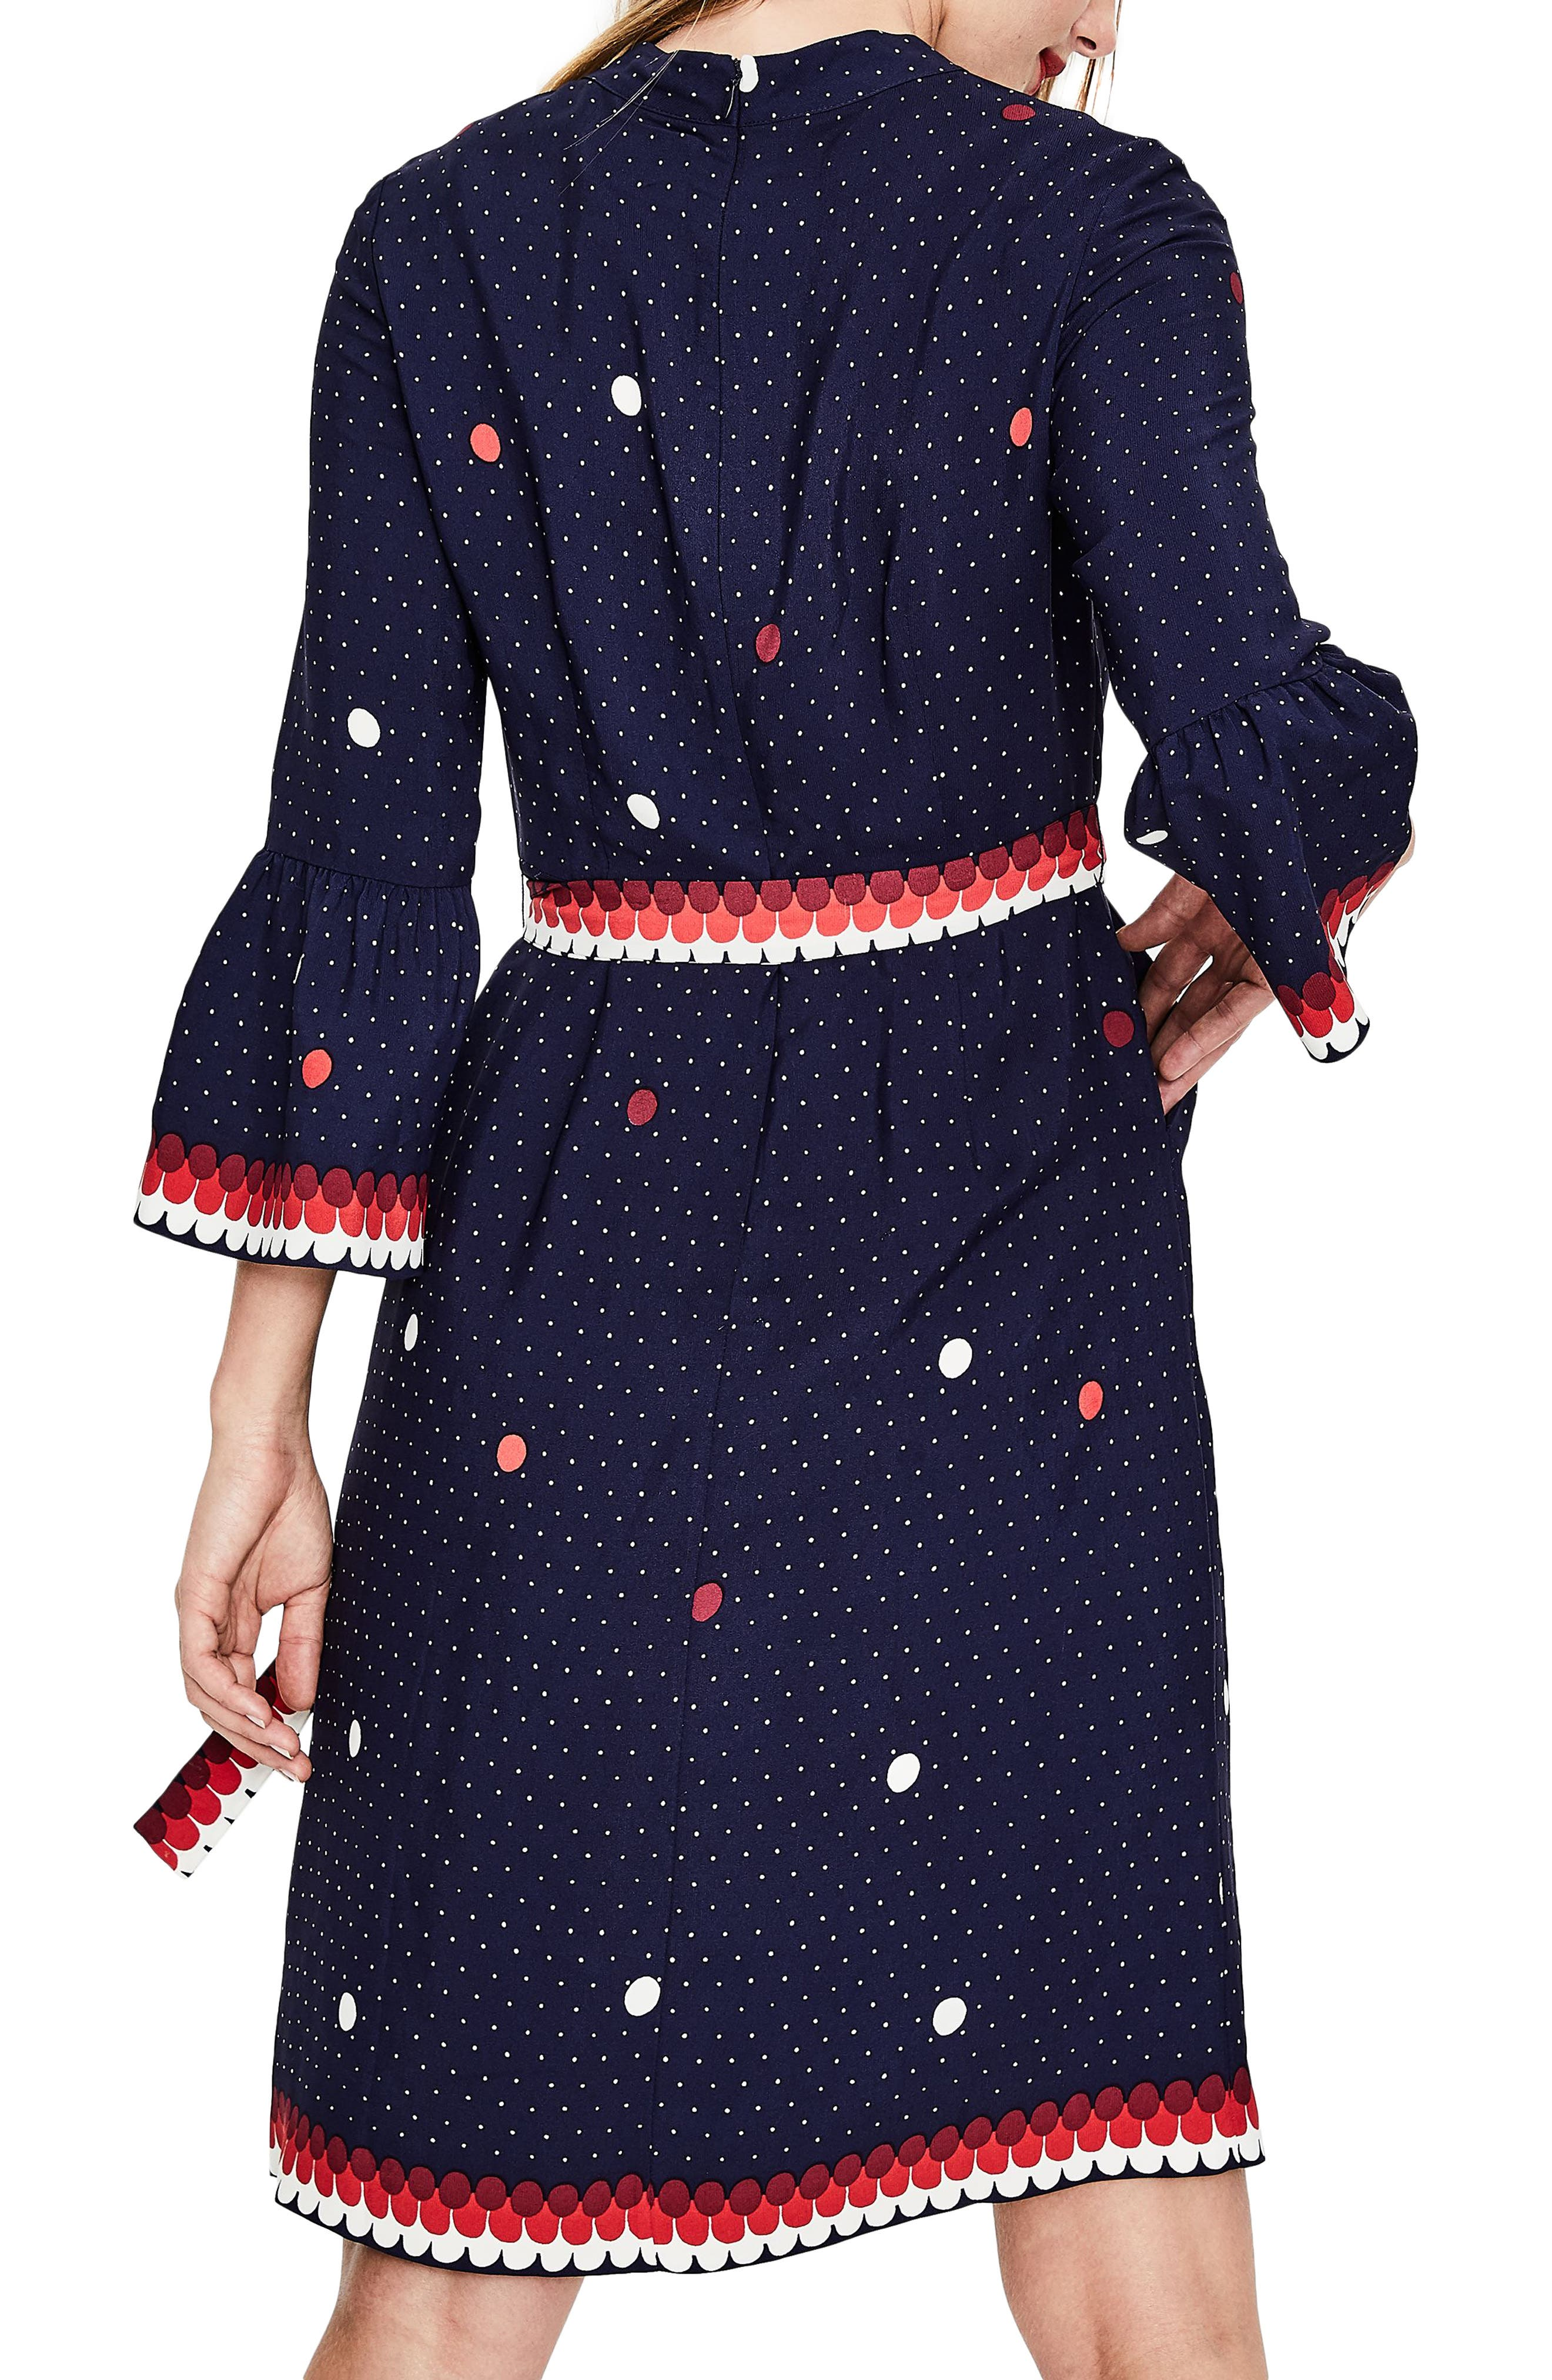 Ruffle Sleeve Polka Dot DRess,                             Alternate thumbnail 3, color,                             Navy/ Spot Border